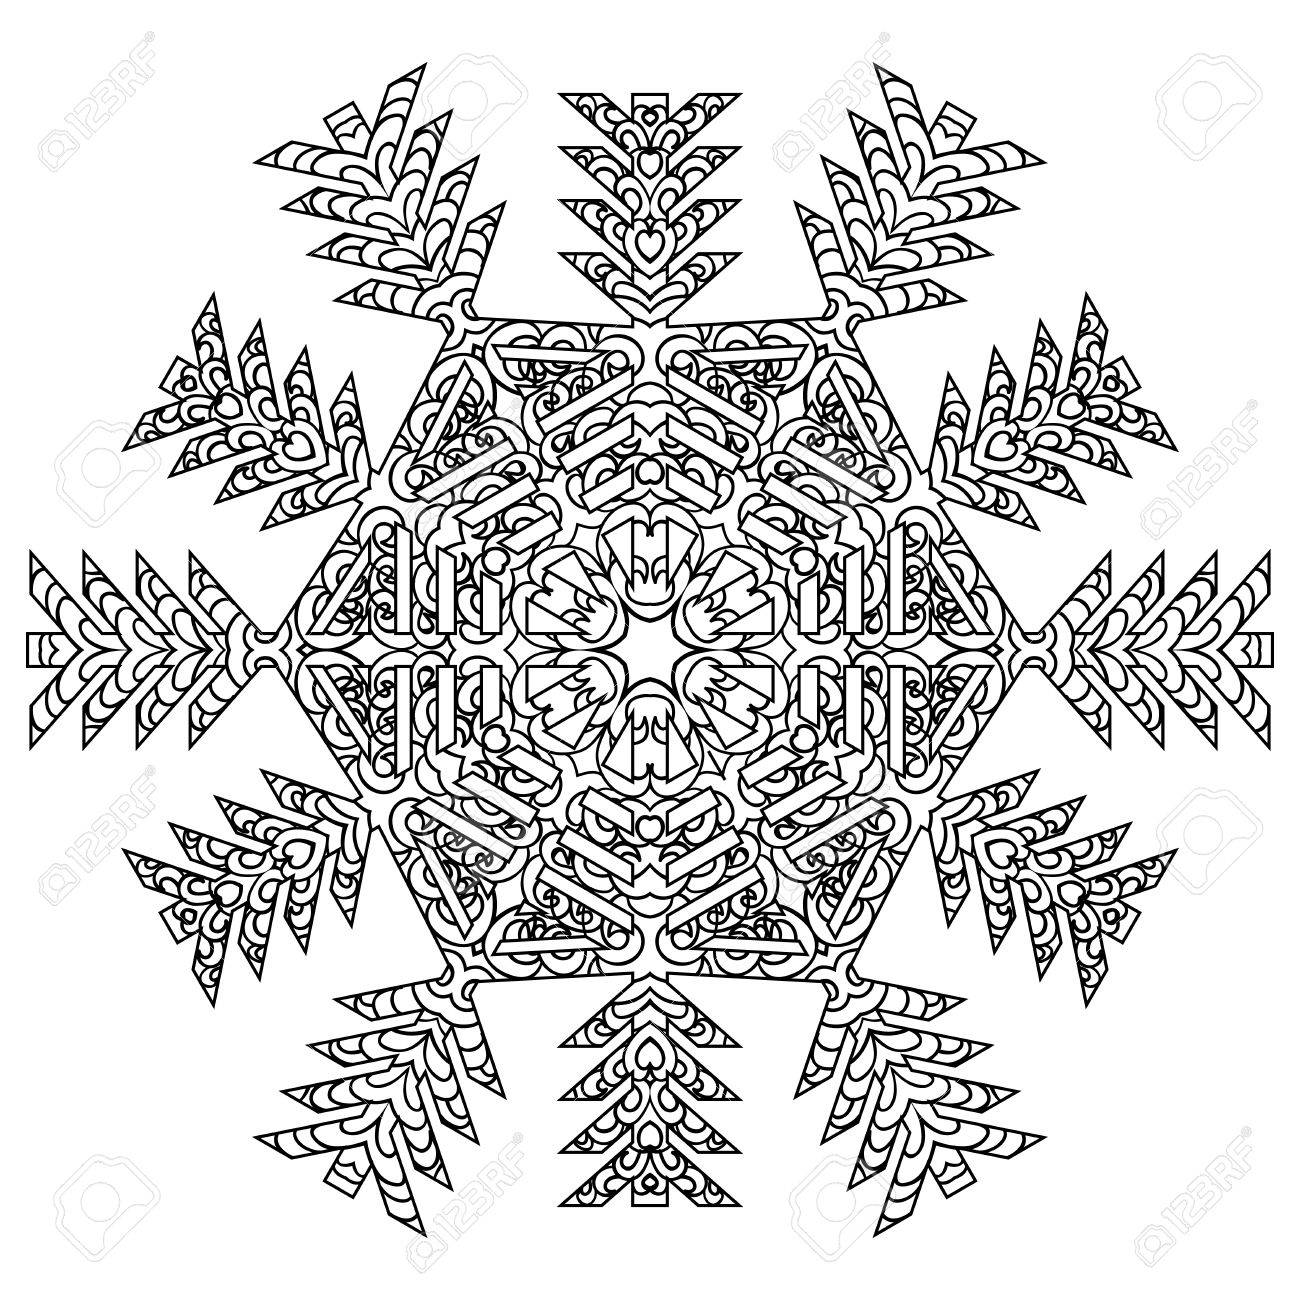 hand drawn antistress snowflake template for cover poster